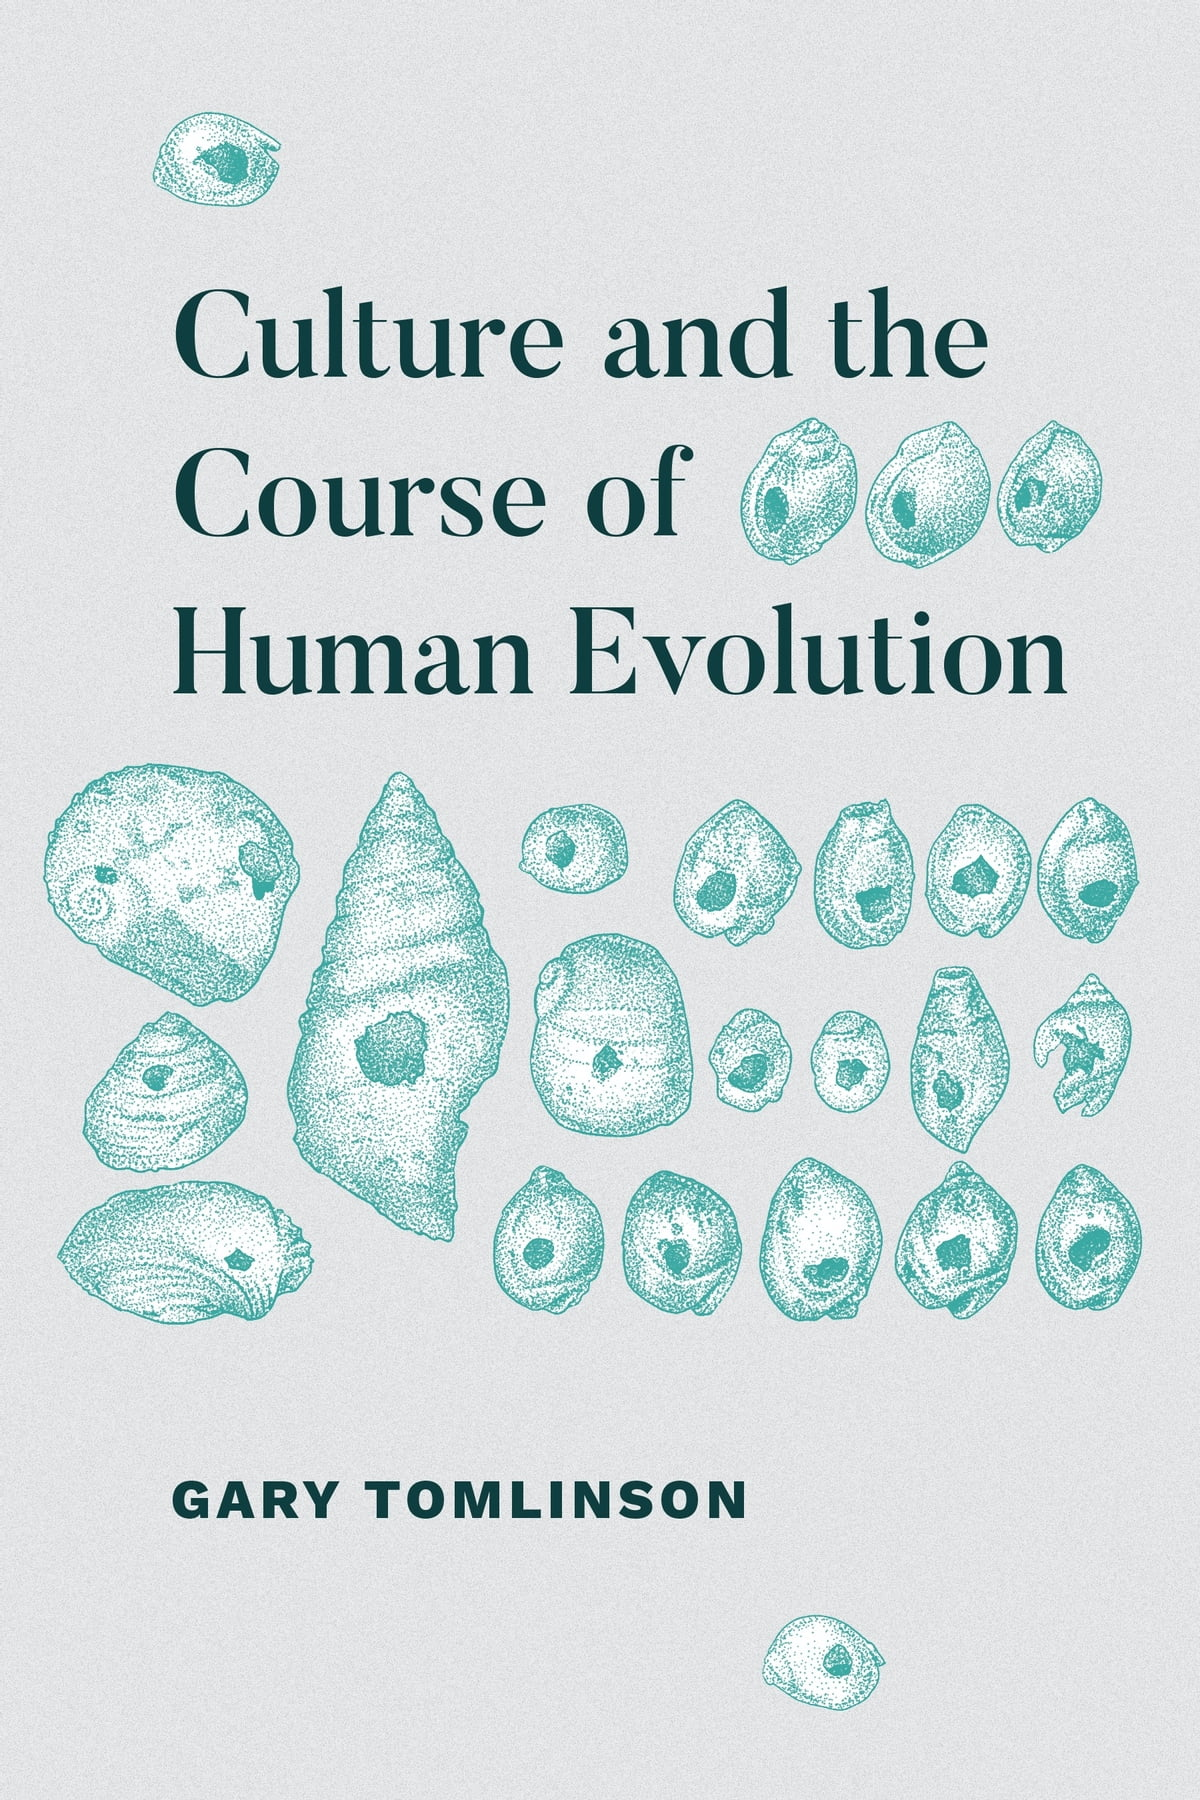 Culture and the Course of Human Evolution eBook by Gary Tomlinson -  9780226548661 | Rakuten Kobo